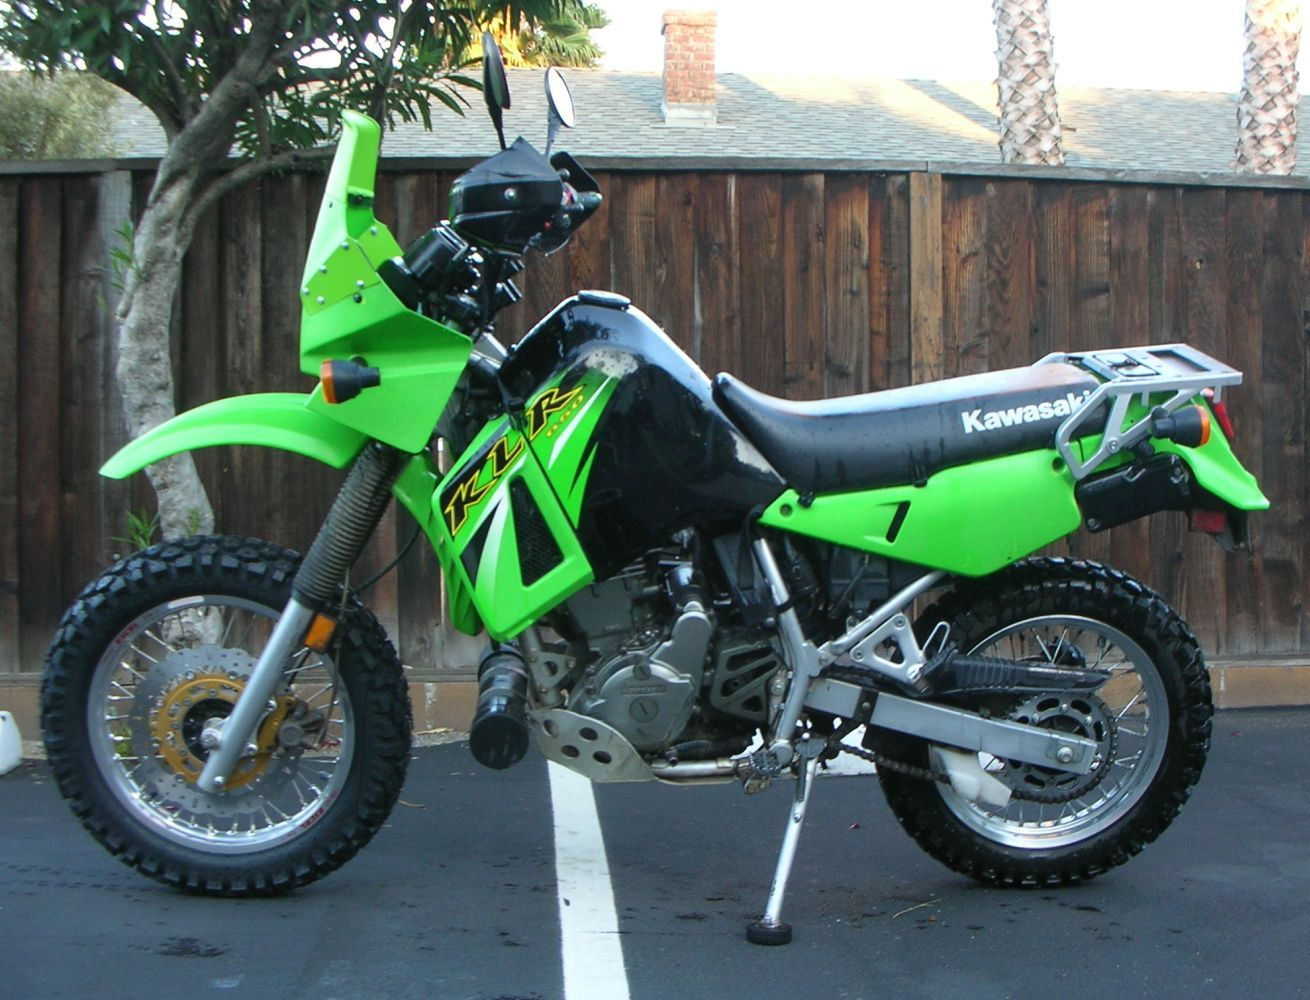 Wheatwhacker Fairing Mod on a KLR650 | Motorcycles/Travel